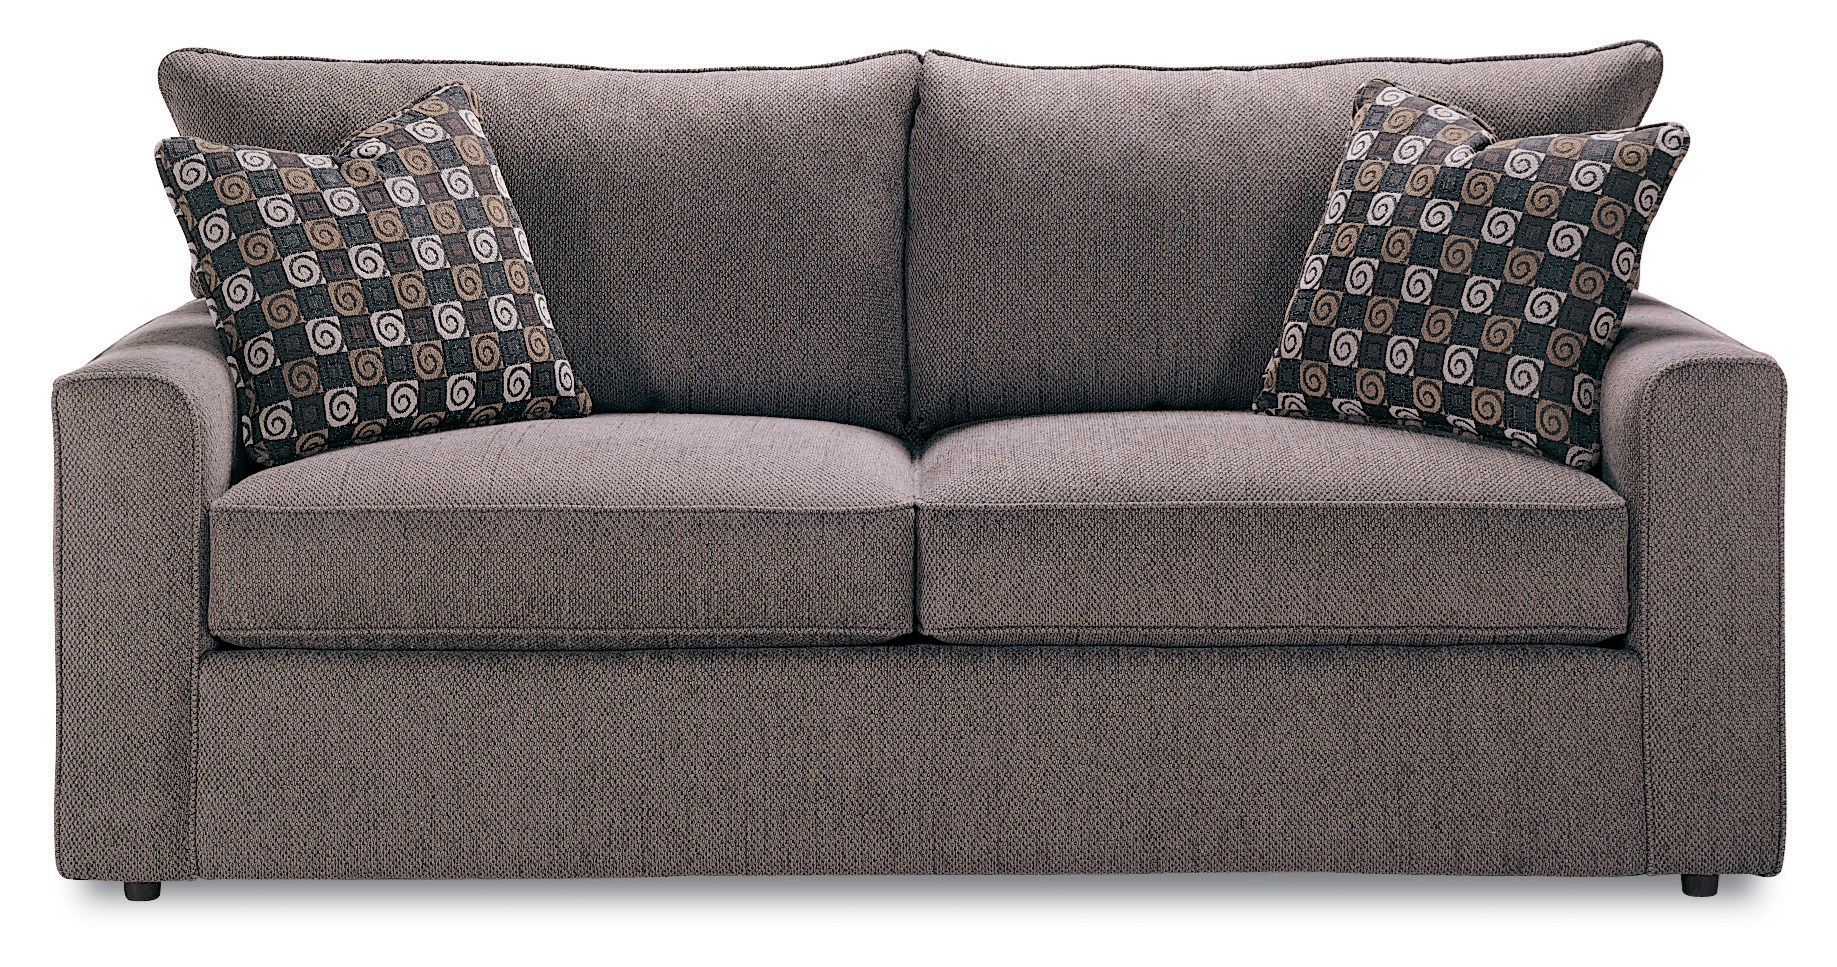 Pesci Queen Size Sofa Sleeper by Rowe at Esprit Decor Home Furnishings